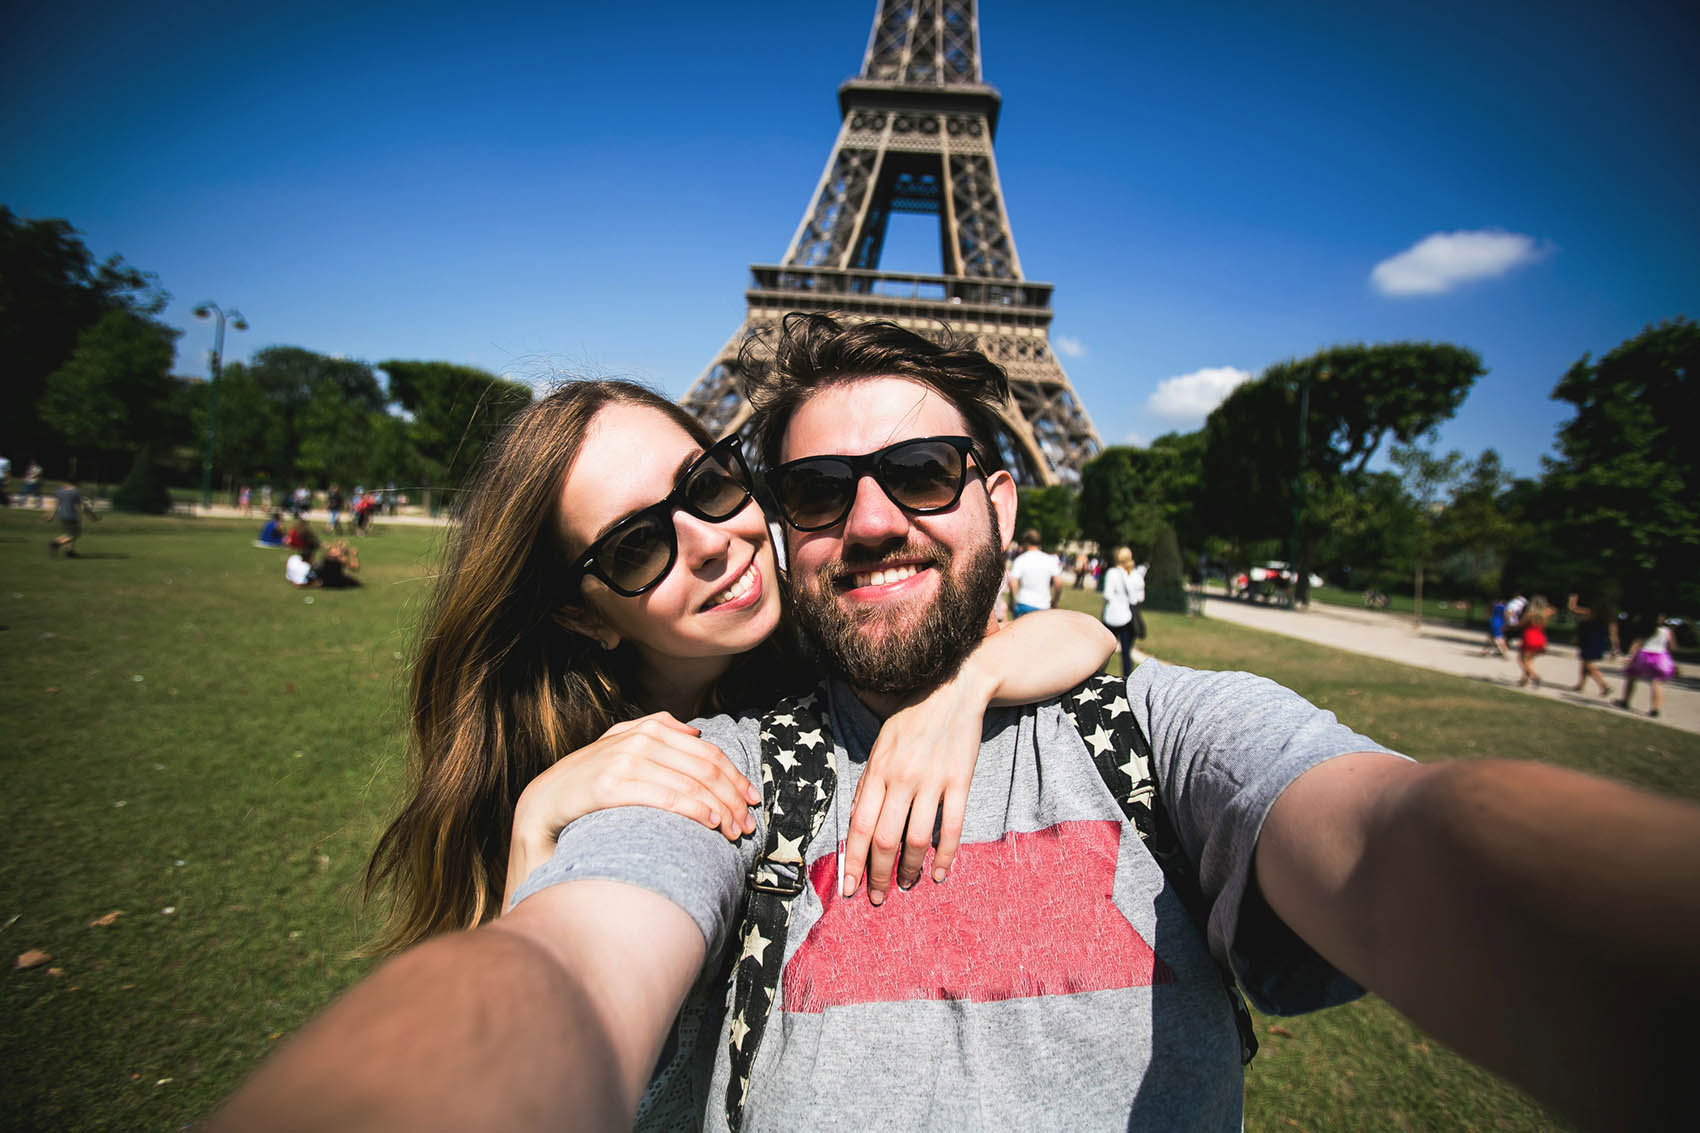 Selfie-In-front-of-the-Eiffel-Tower